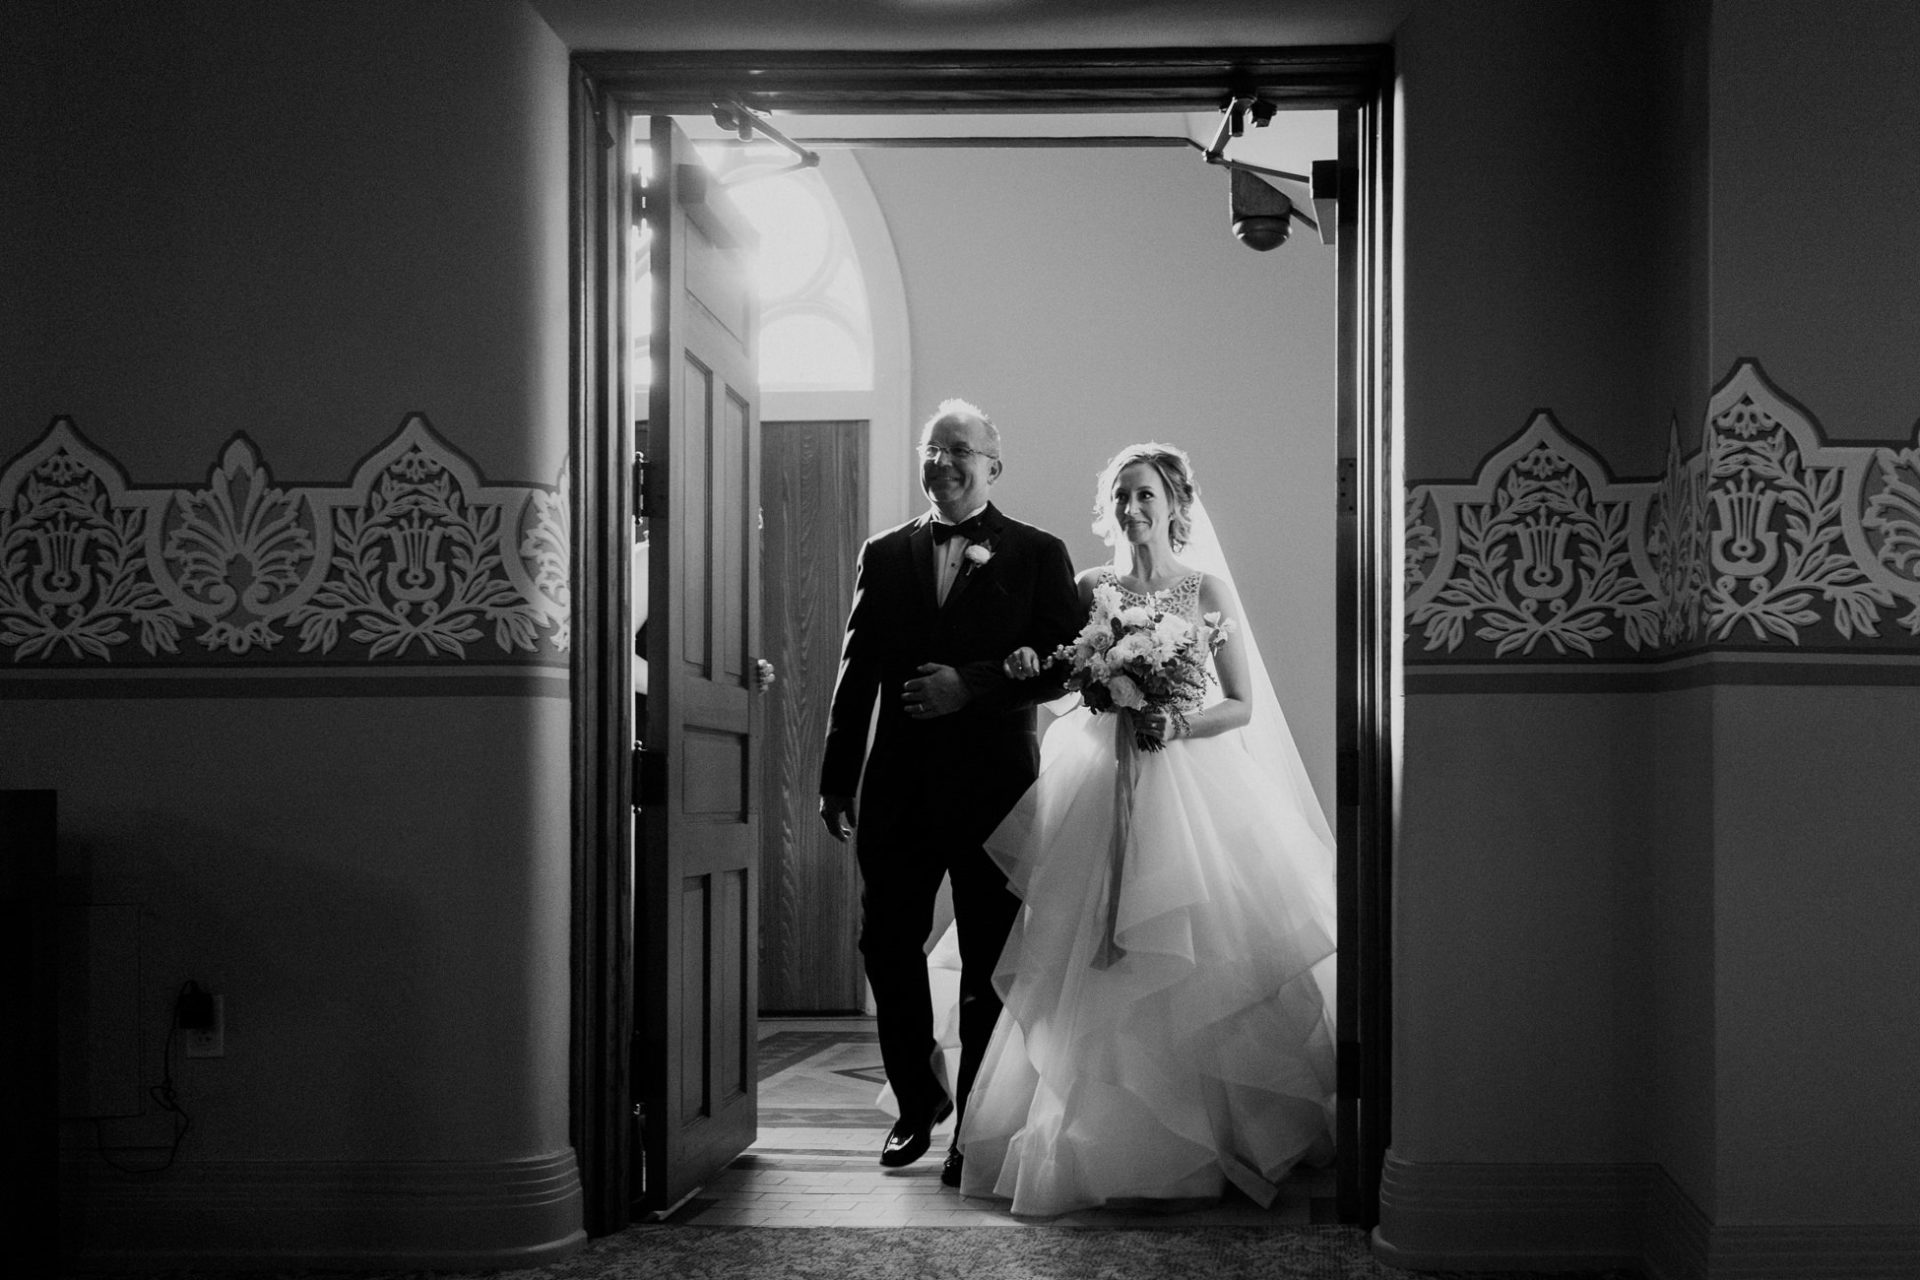 best-top-los-angeles-destination-wedding-photographer-hipster-modern-quirky-editorial-romantic-epic-28-bride-dad-aisle